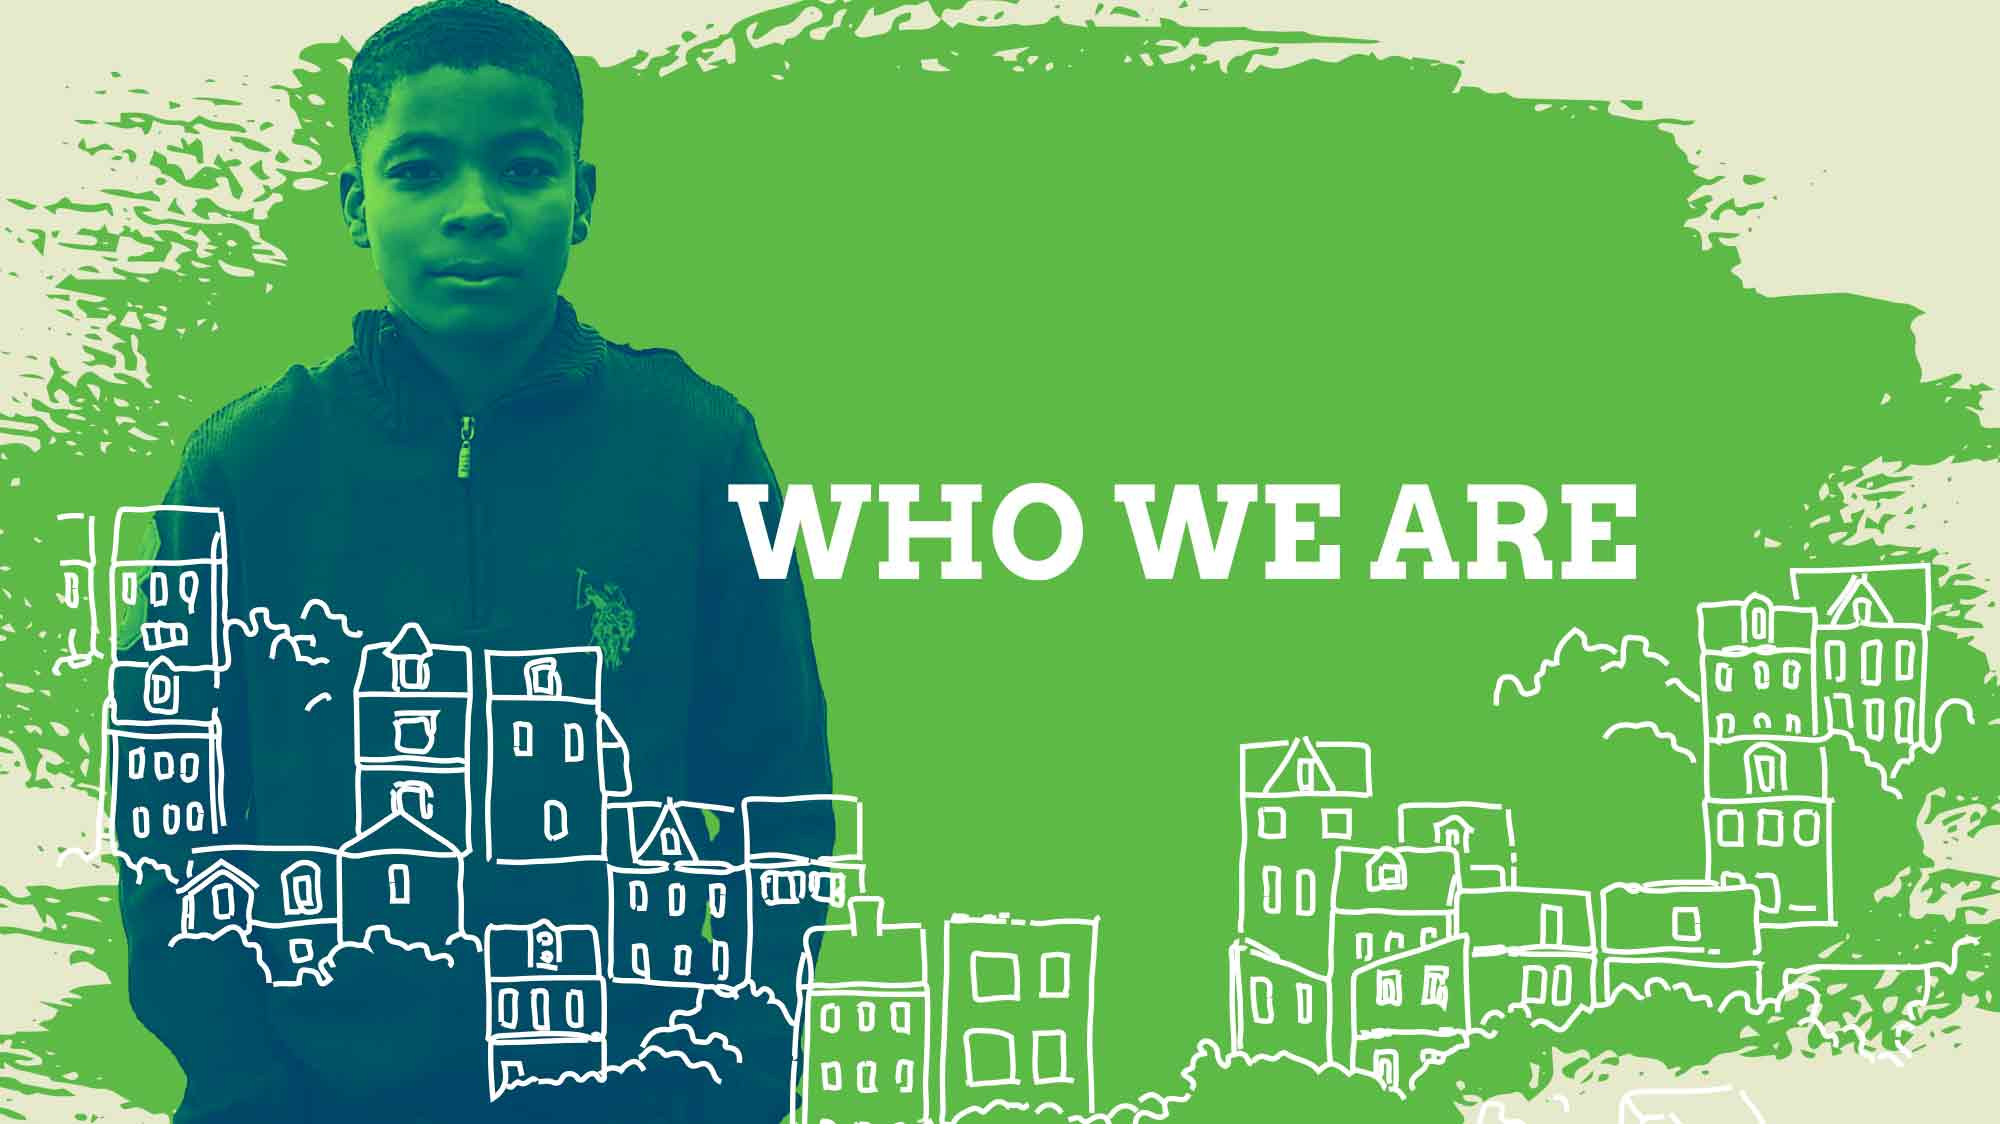 graphic with little boy, text: Who We Are